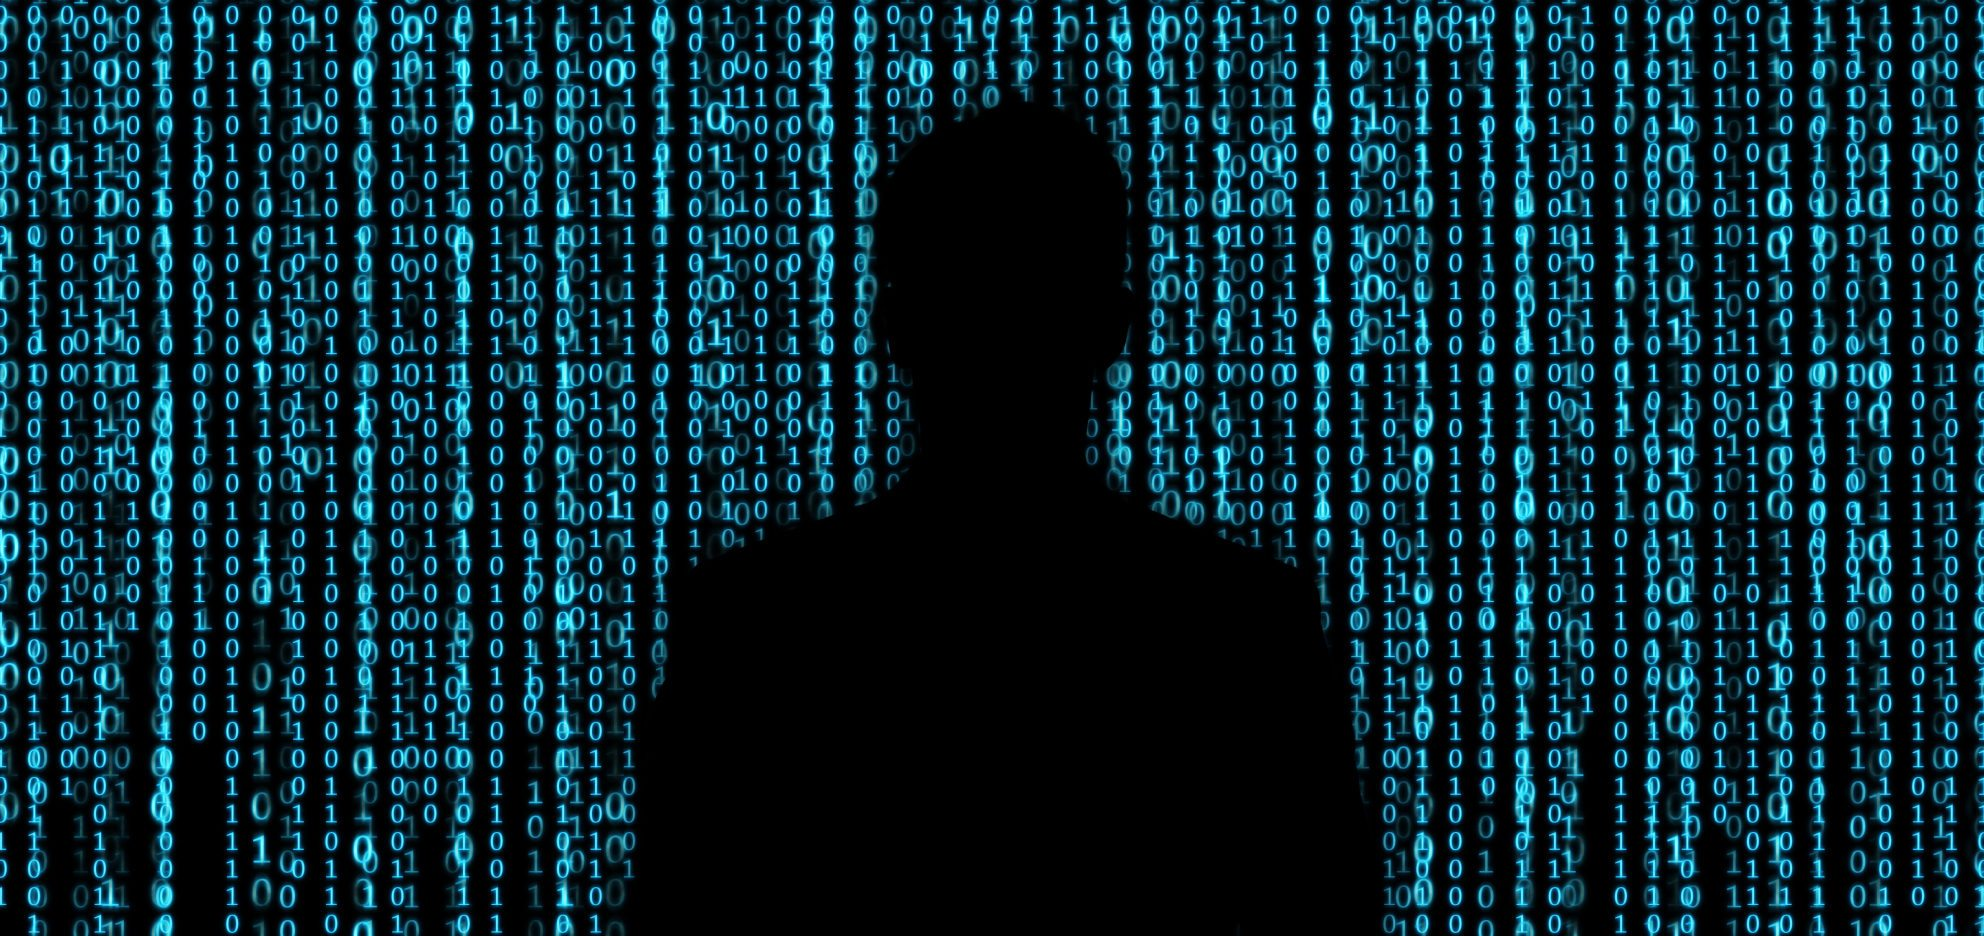 Thousands of agent and broker websites shielded from data scrapers